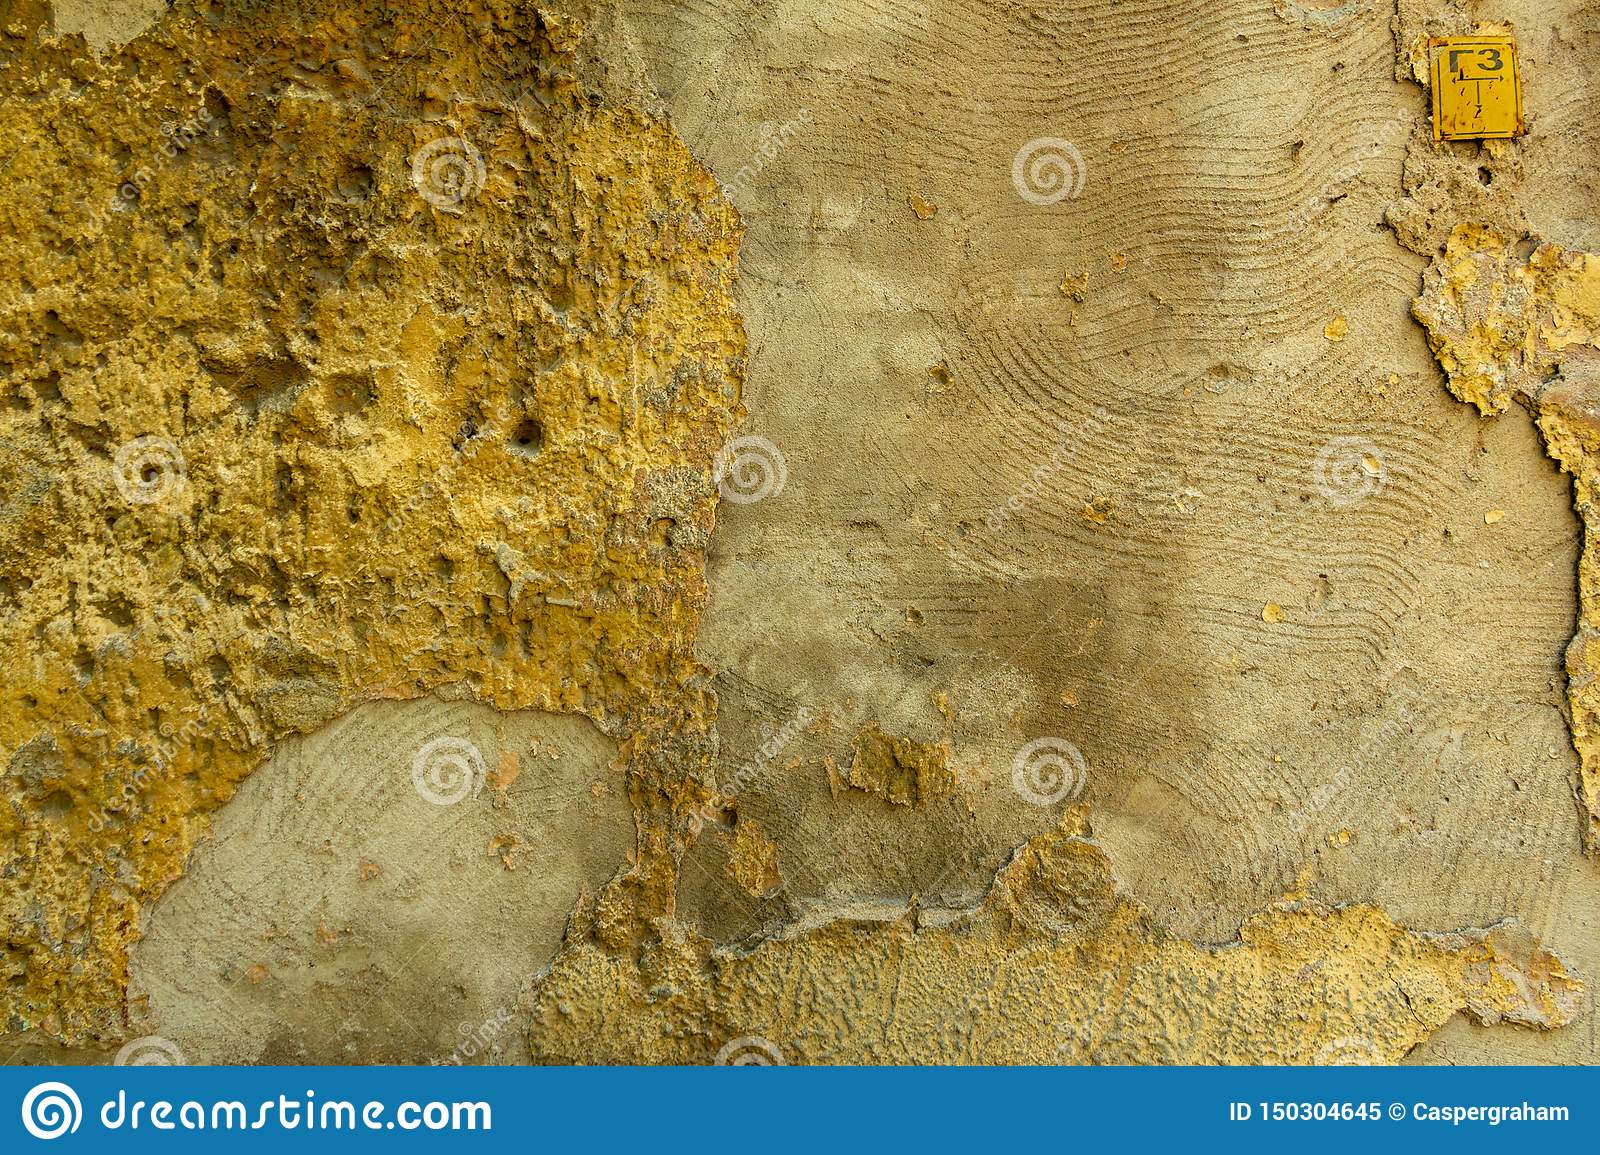 Wall of concrete and brick with plaster texture